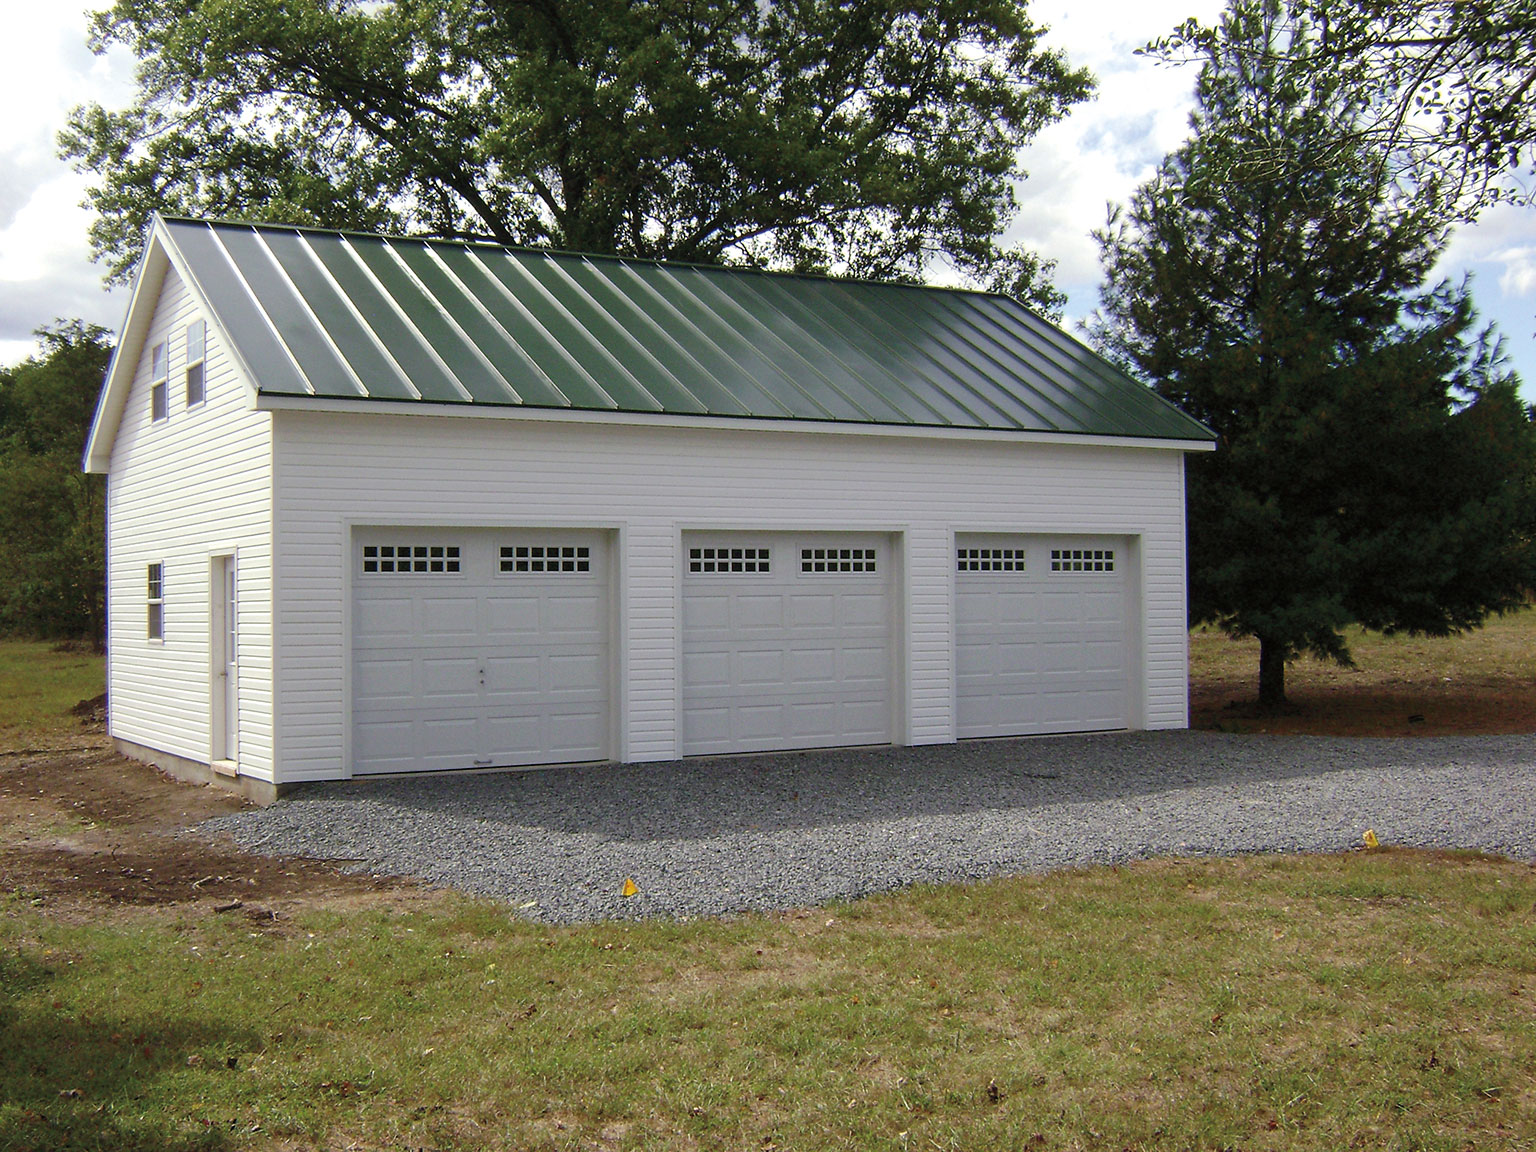 Built on site custom amish garages in oneonta ny amish for Two story metal garage